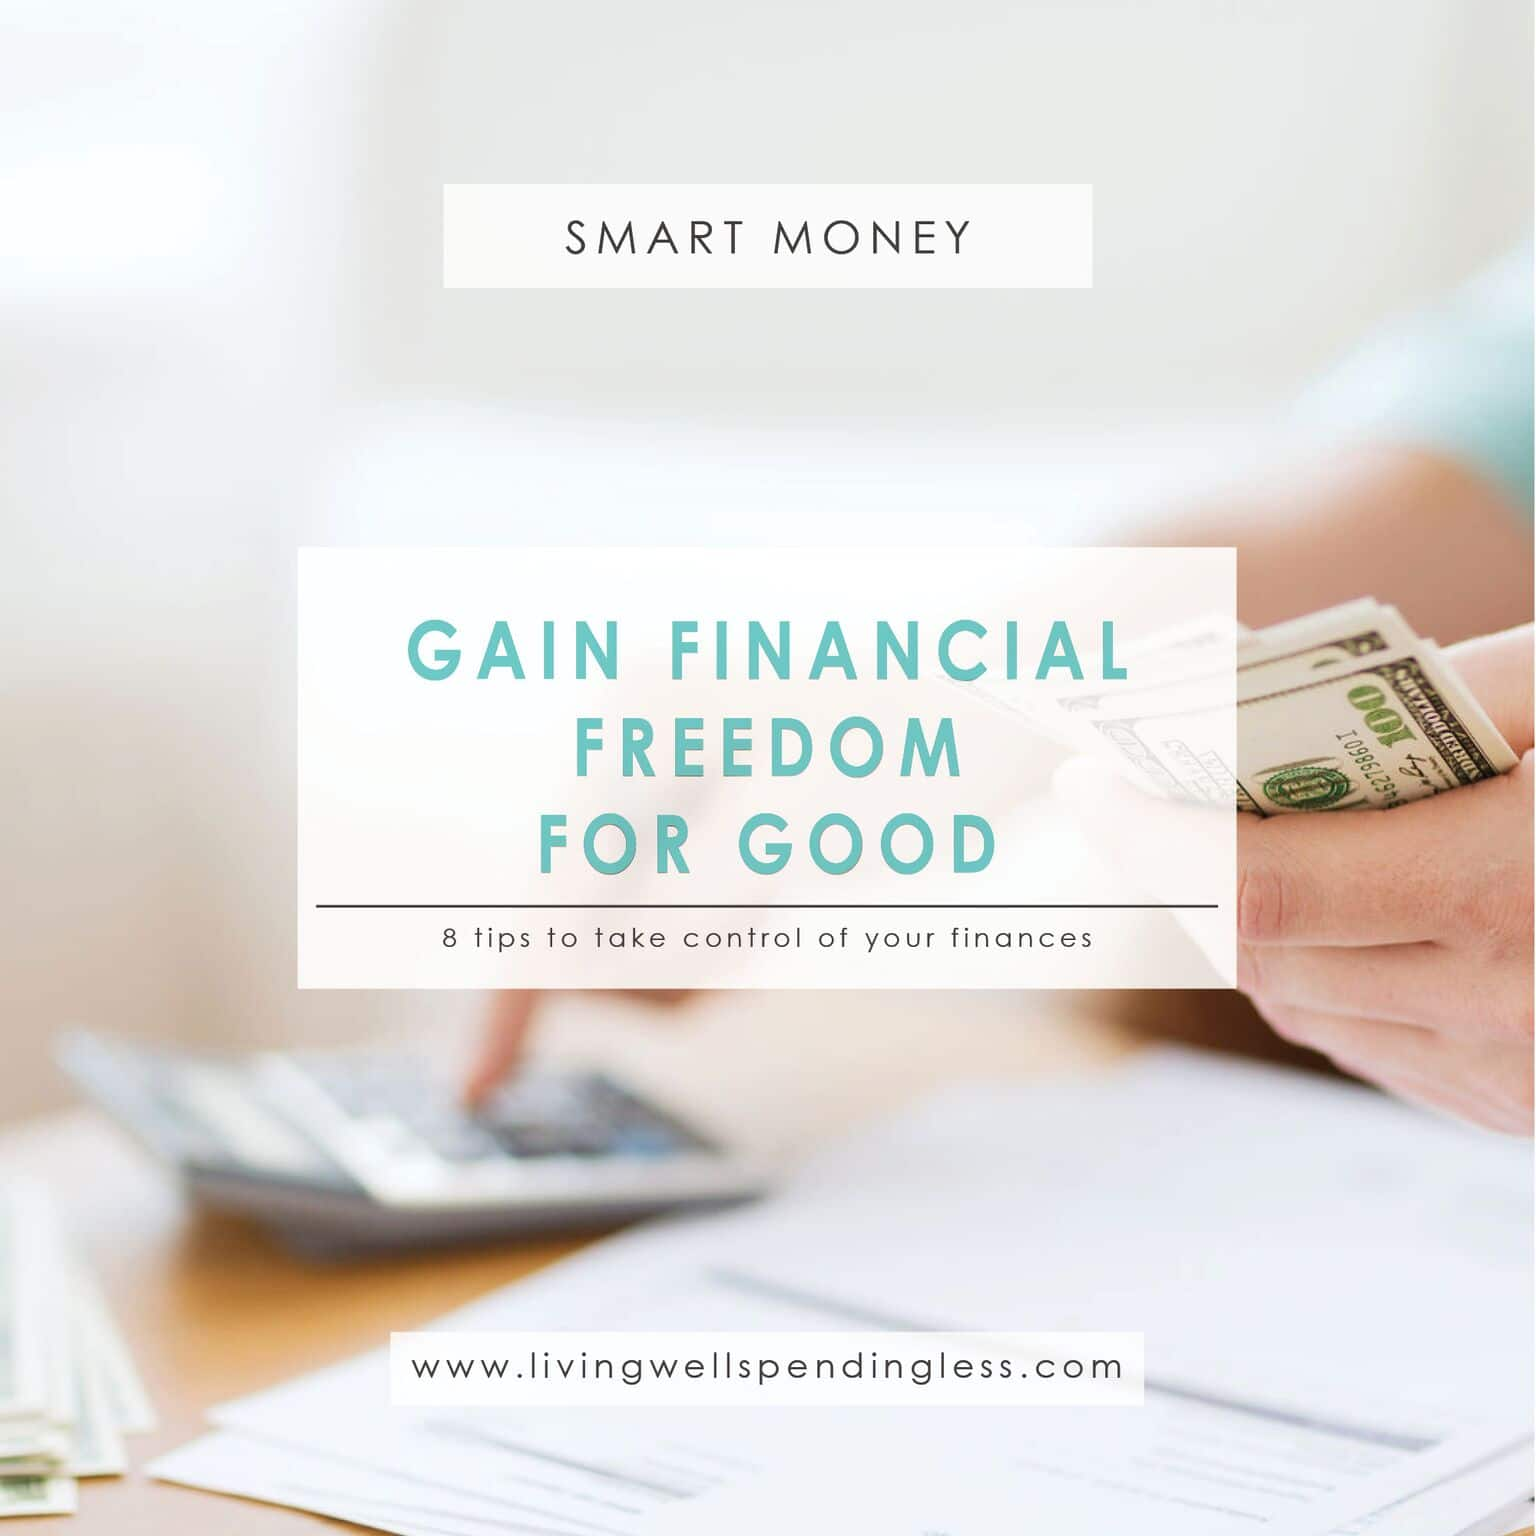 Gain Financial Freedom for Good⎢Take Control of Your Finances⎢Smart Money⎢Financial Peace⎢Money Goals⎢Family Money Management⎢Get Out of Debt